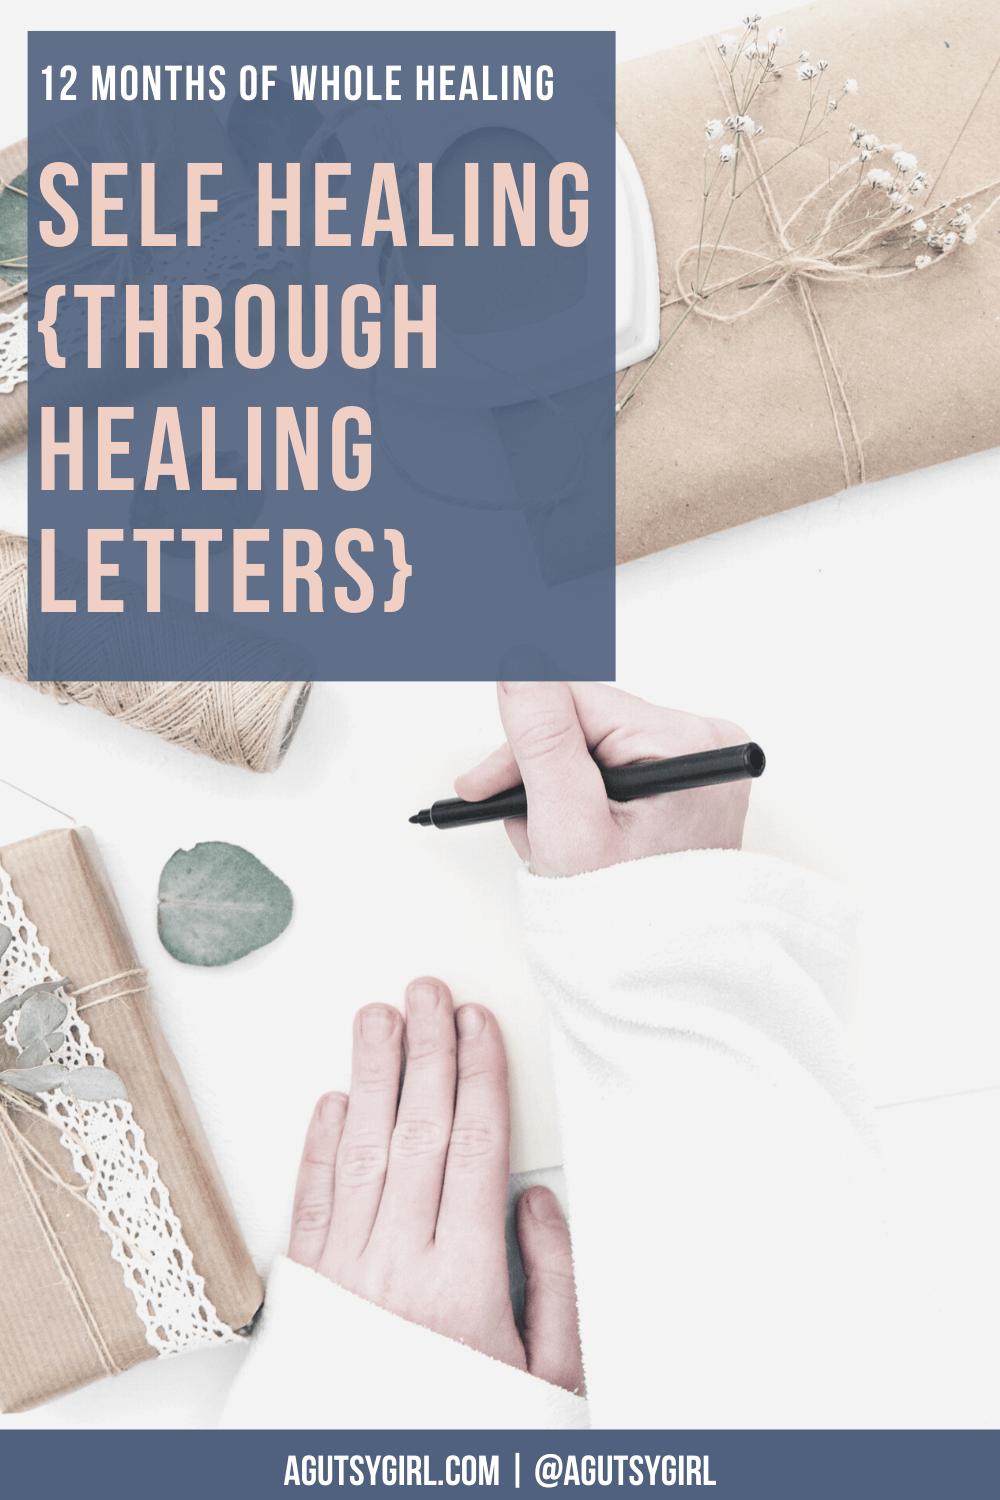 Self Healing through healing letters 12 months of whole healing experiments and challenges agutsygirl.com #guthealing #healthychallenge #healthychallenges #healthexperiments